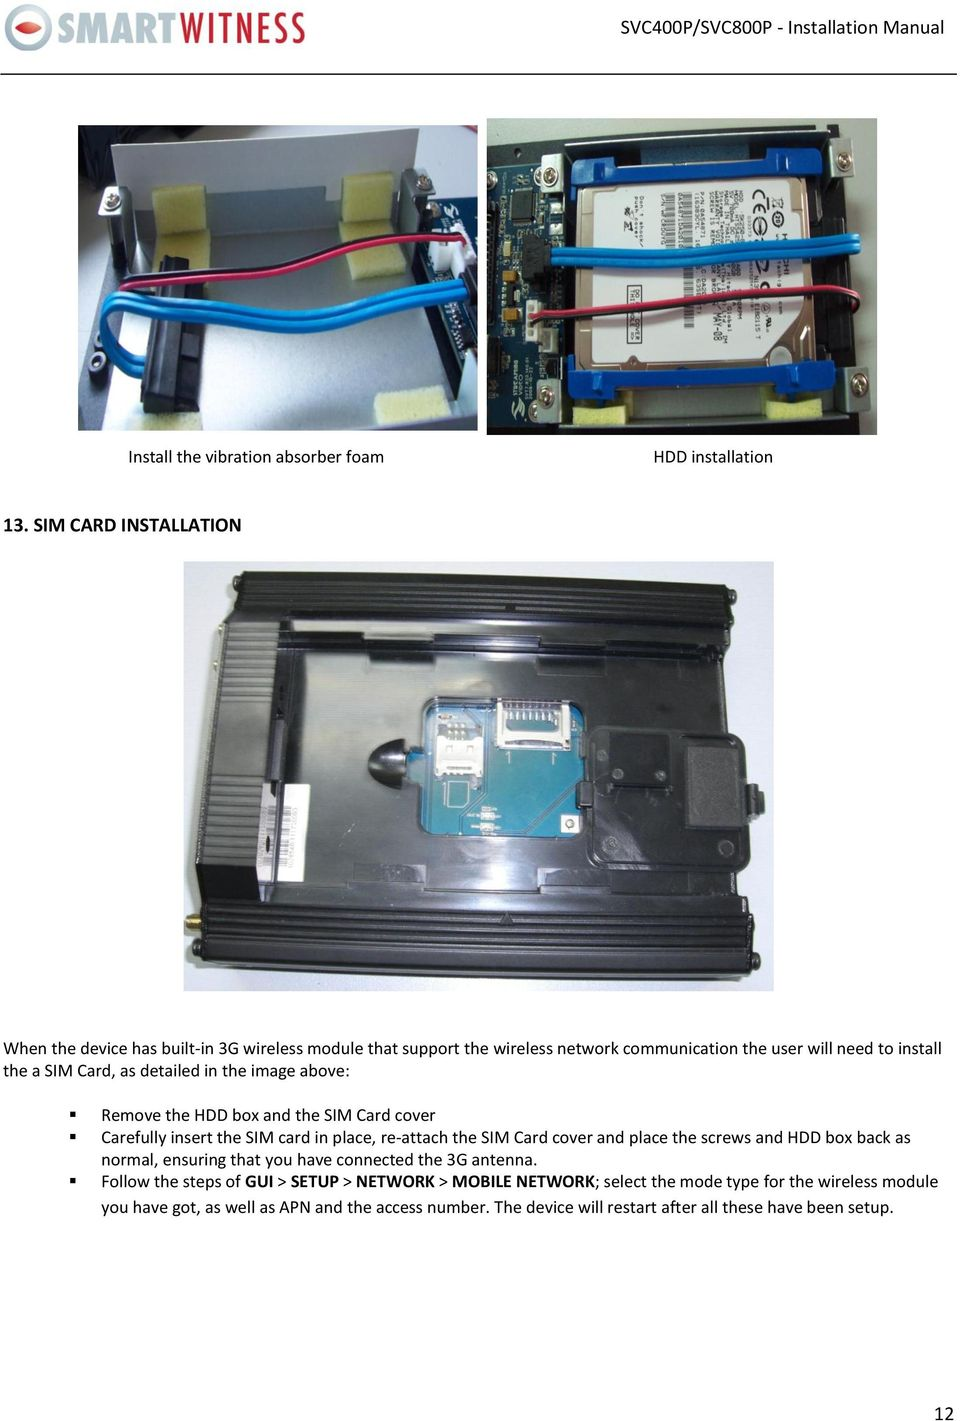 Svc400p Svc800p 4 8 Camera Live Tracking Vehicle Dvr Installation Smart Witness Wiring Diagram Detailed In The Image Above Remove Hdd Box And Sim Card Cover Carefully